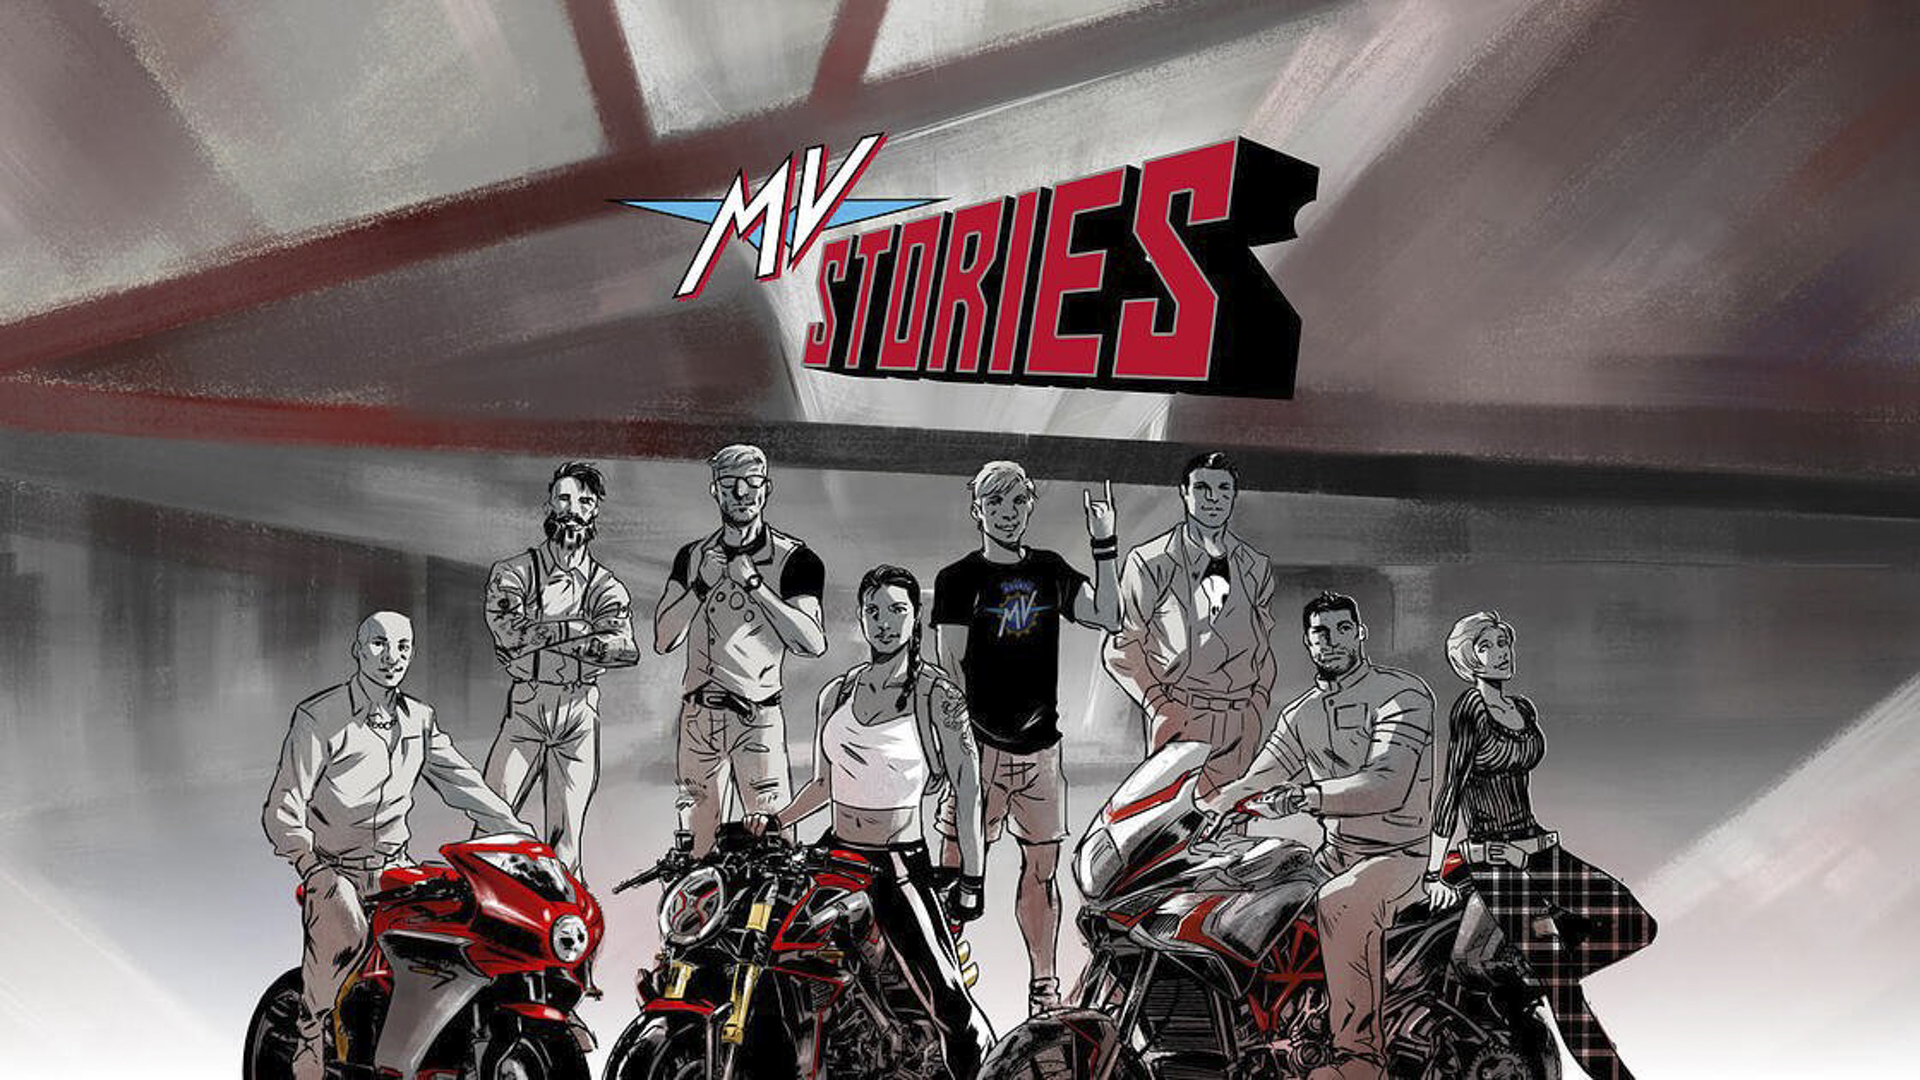 MV Agusta iconic range of motorcycles now starring in the first MV branded comic strip